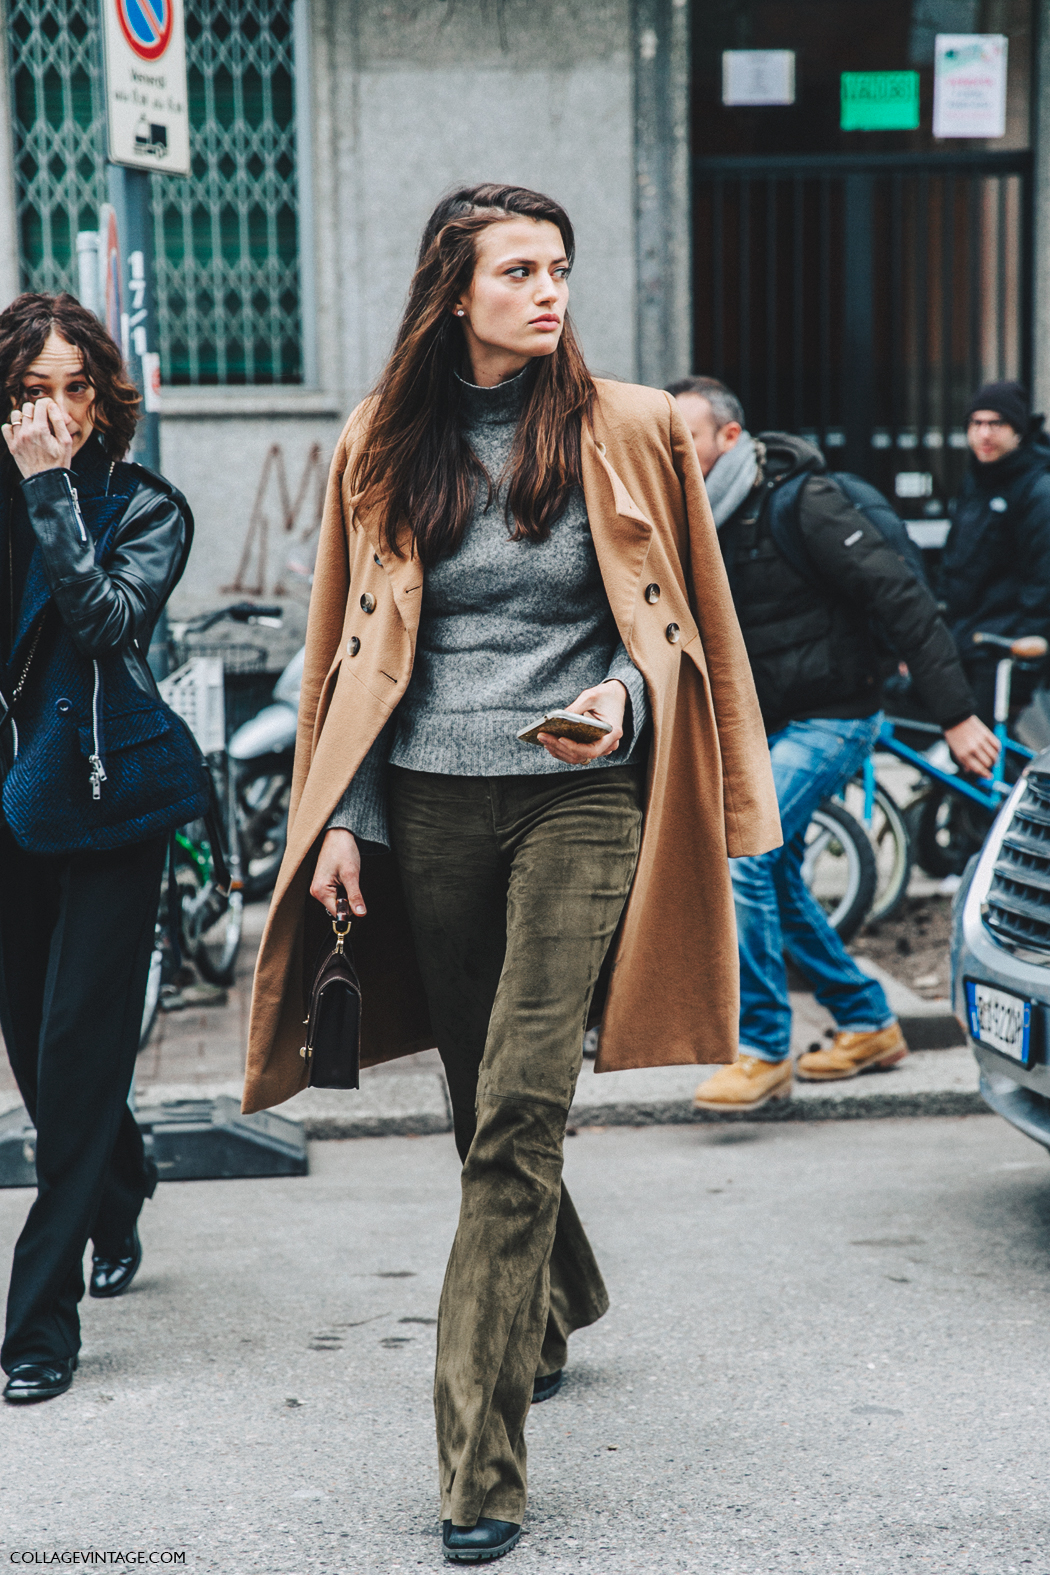 Milan_Fashion_Week_Fall_16-MFW-Street_Style-Collage_Vintage-Alessandra_Codinha-1